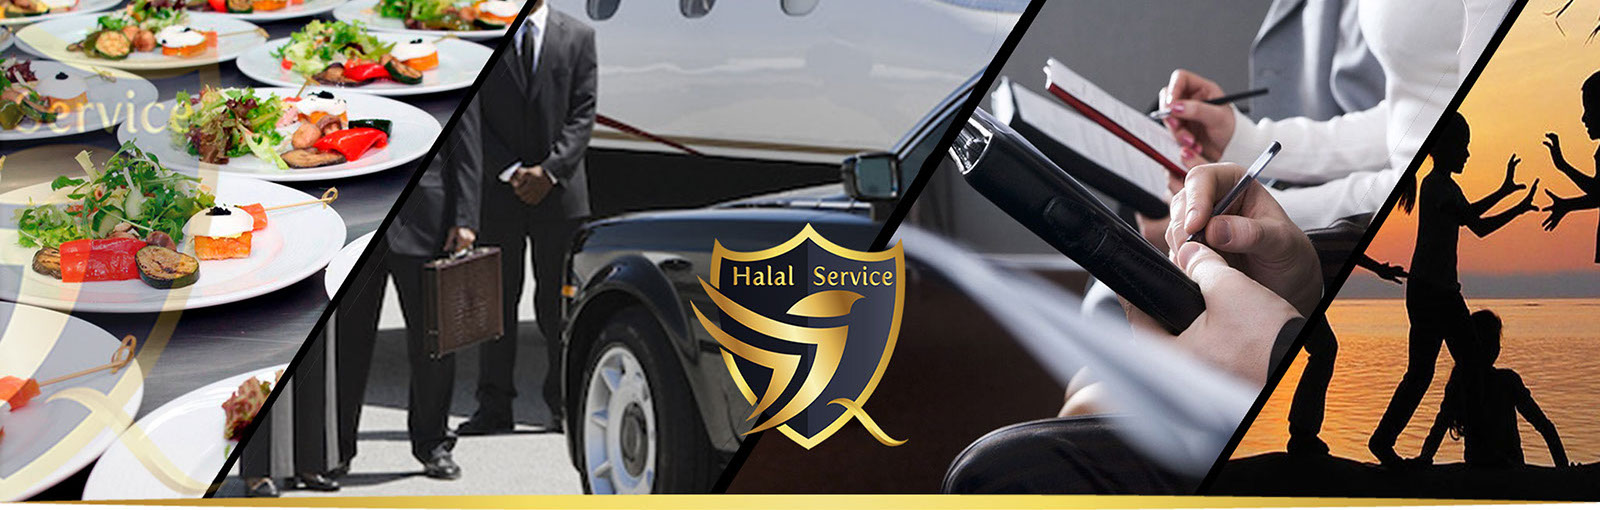 Home. HALAL SERVICE - HS. HALAL Security and Accompaniment , HALAL baby sitting , HALAL catering ,HALAL room fitting